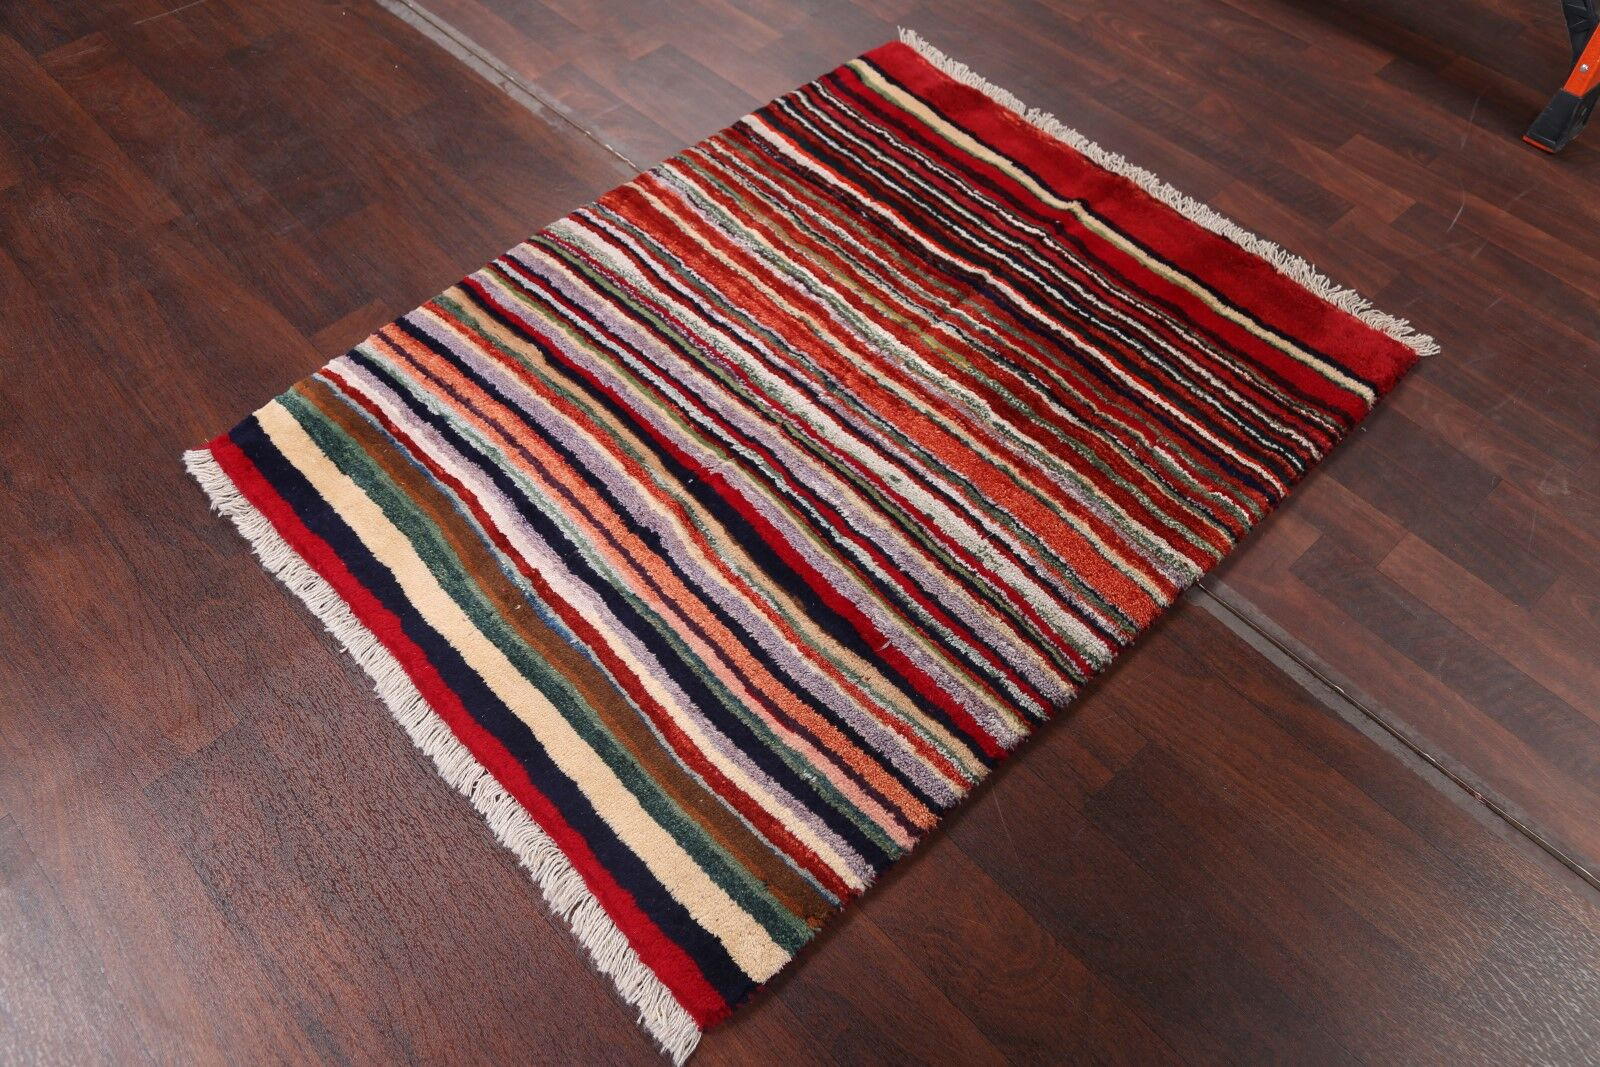 One-of-a-Kind Shiraz Gabbeh Persian Hand-Knotted 4' 4'' x 3' 6'' Wool Red/Black Area Rug